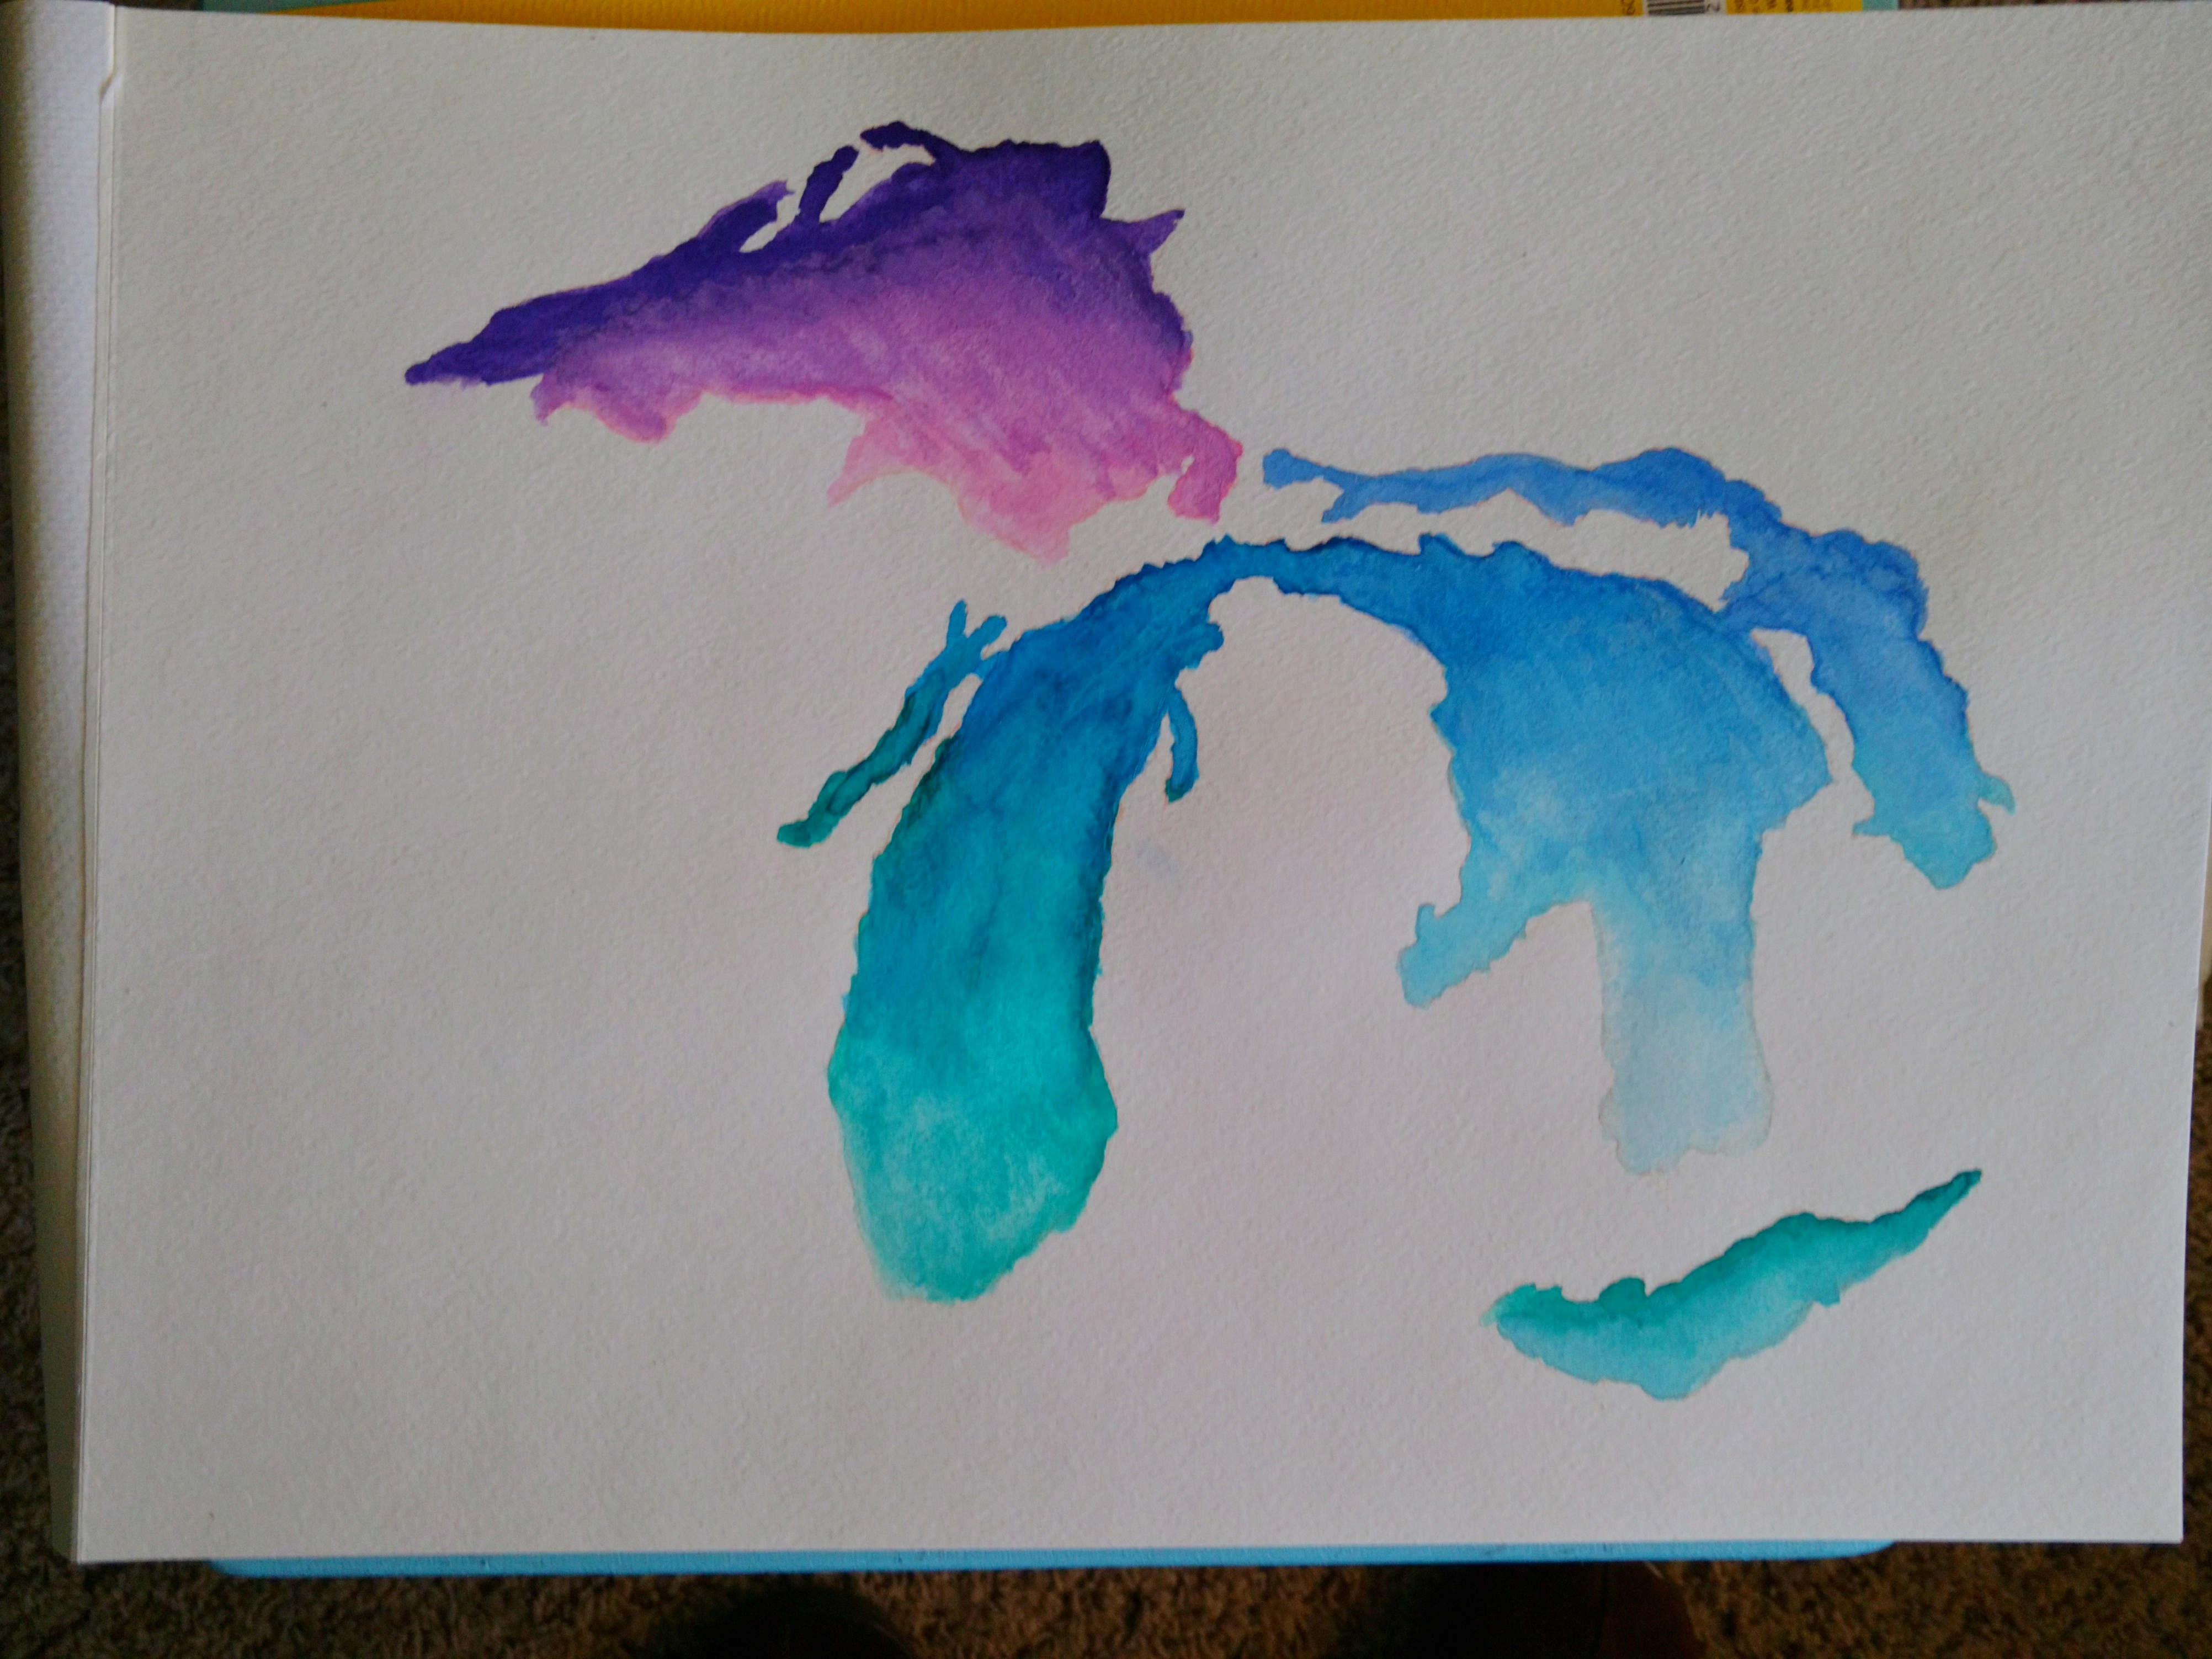 Watercolor image of The Great Lakes